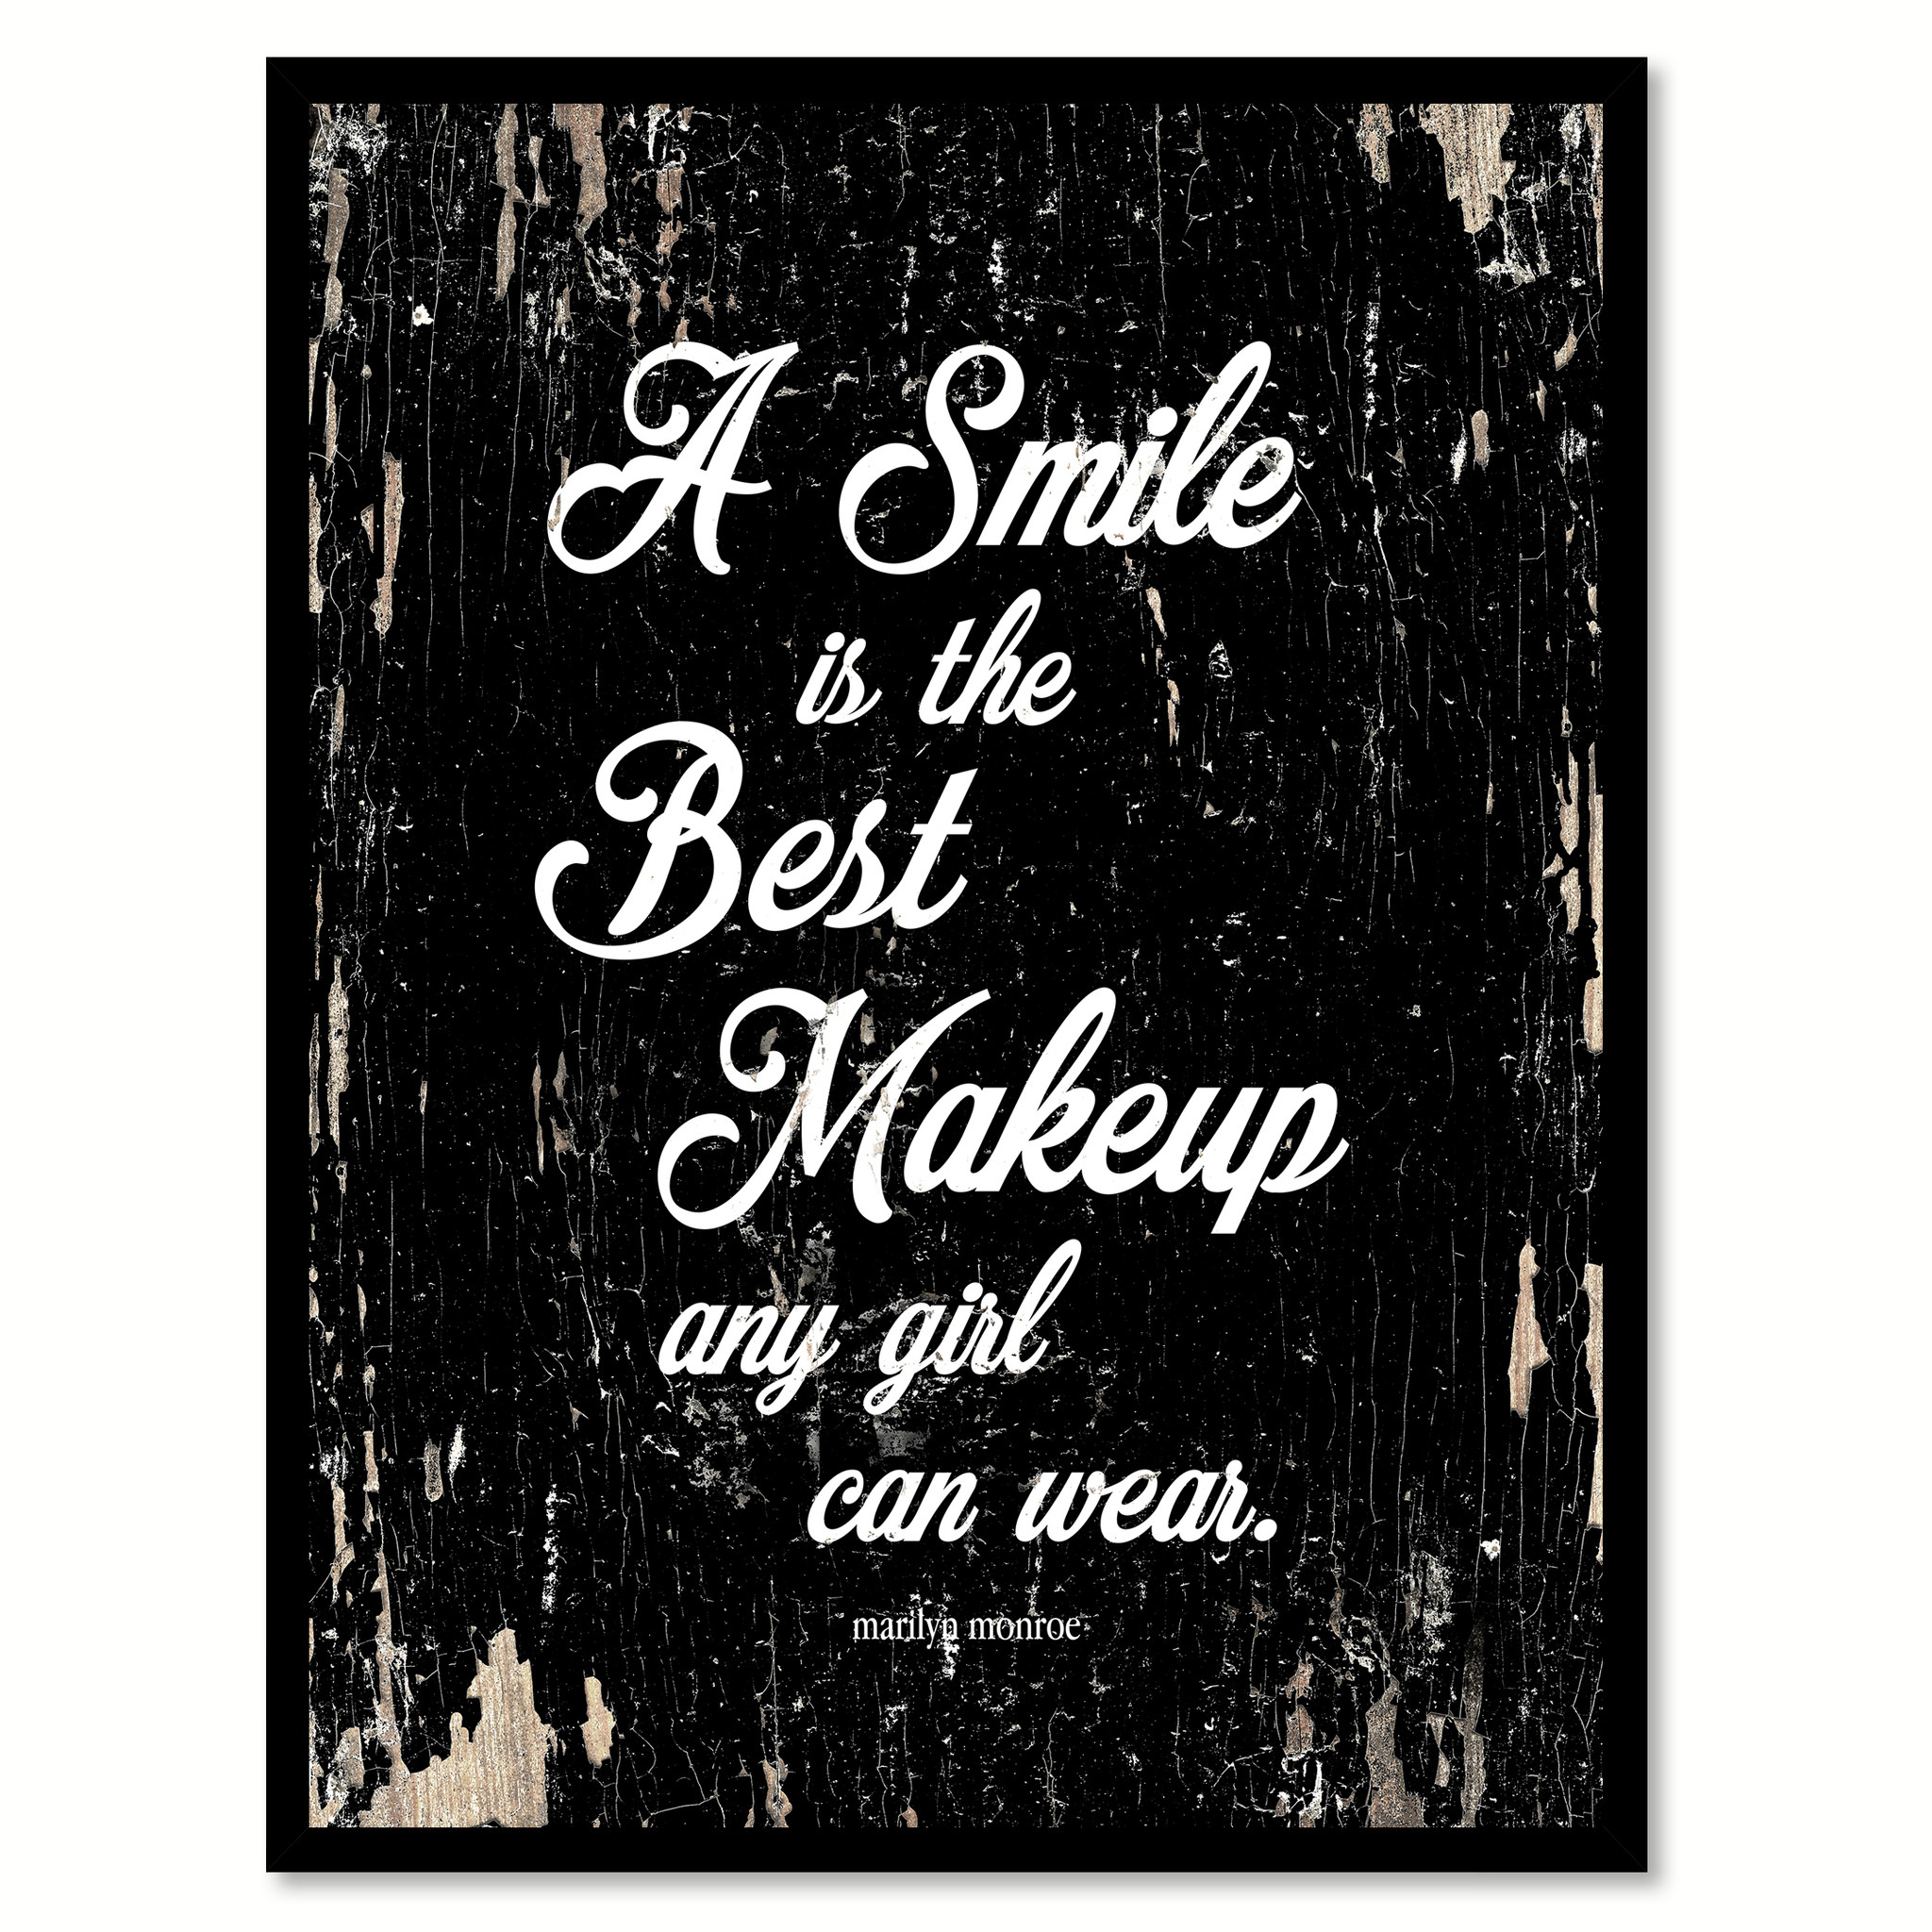 "A Smile Is The Best Makeup Marilyn Monroe Quote Saying Canvas Print with Picture Frame Home Decor Wall Art Gifts 111936 - 7""x9\"""